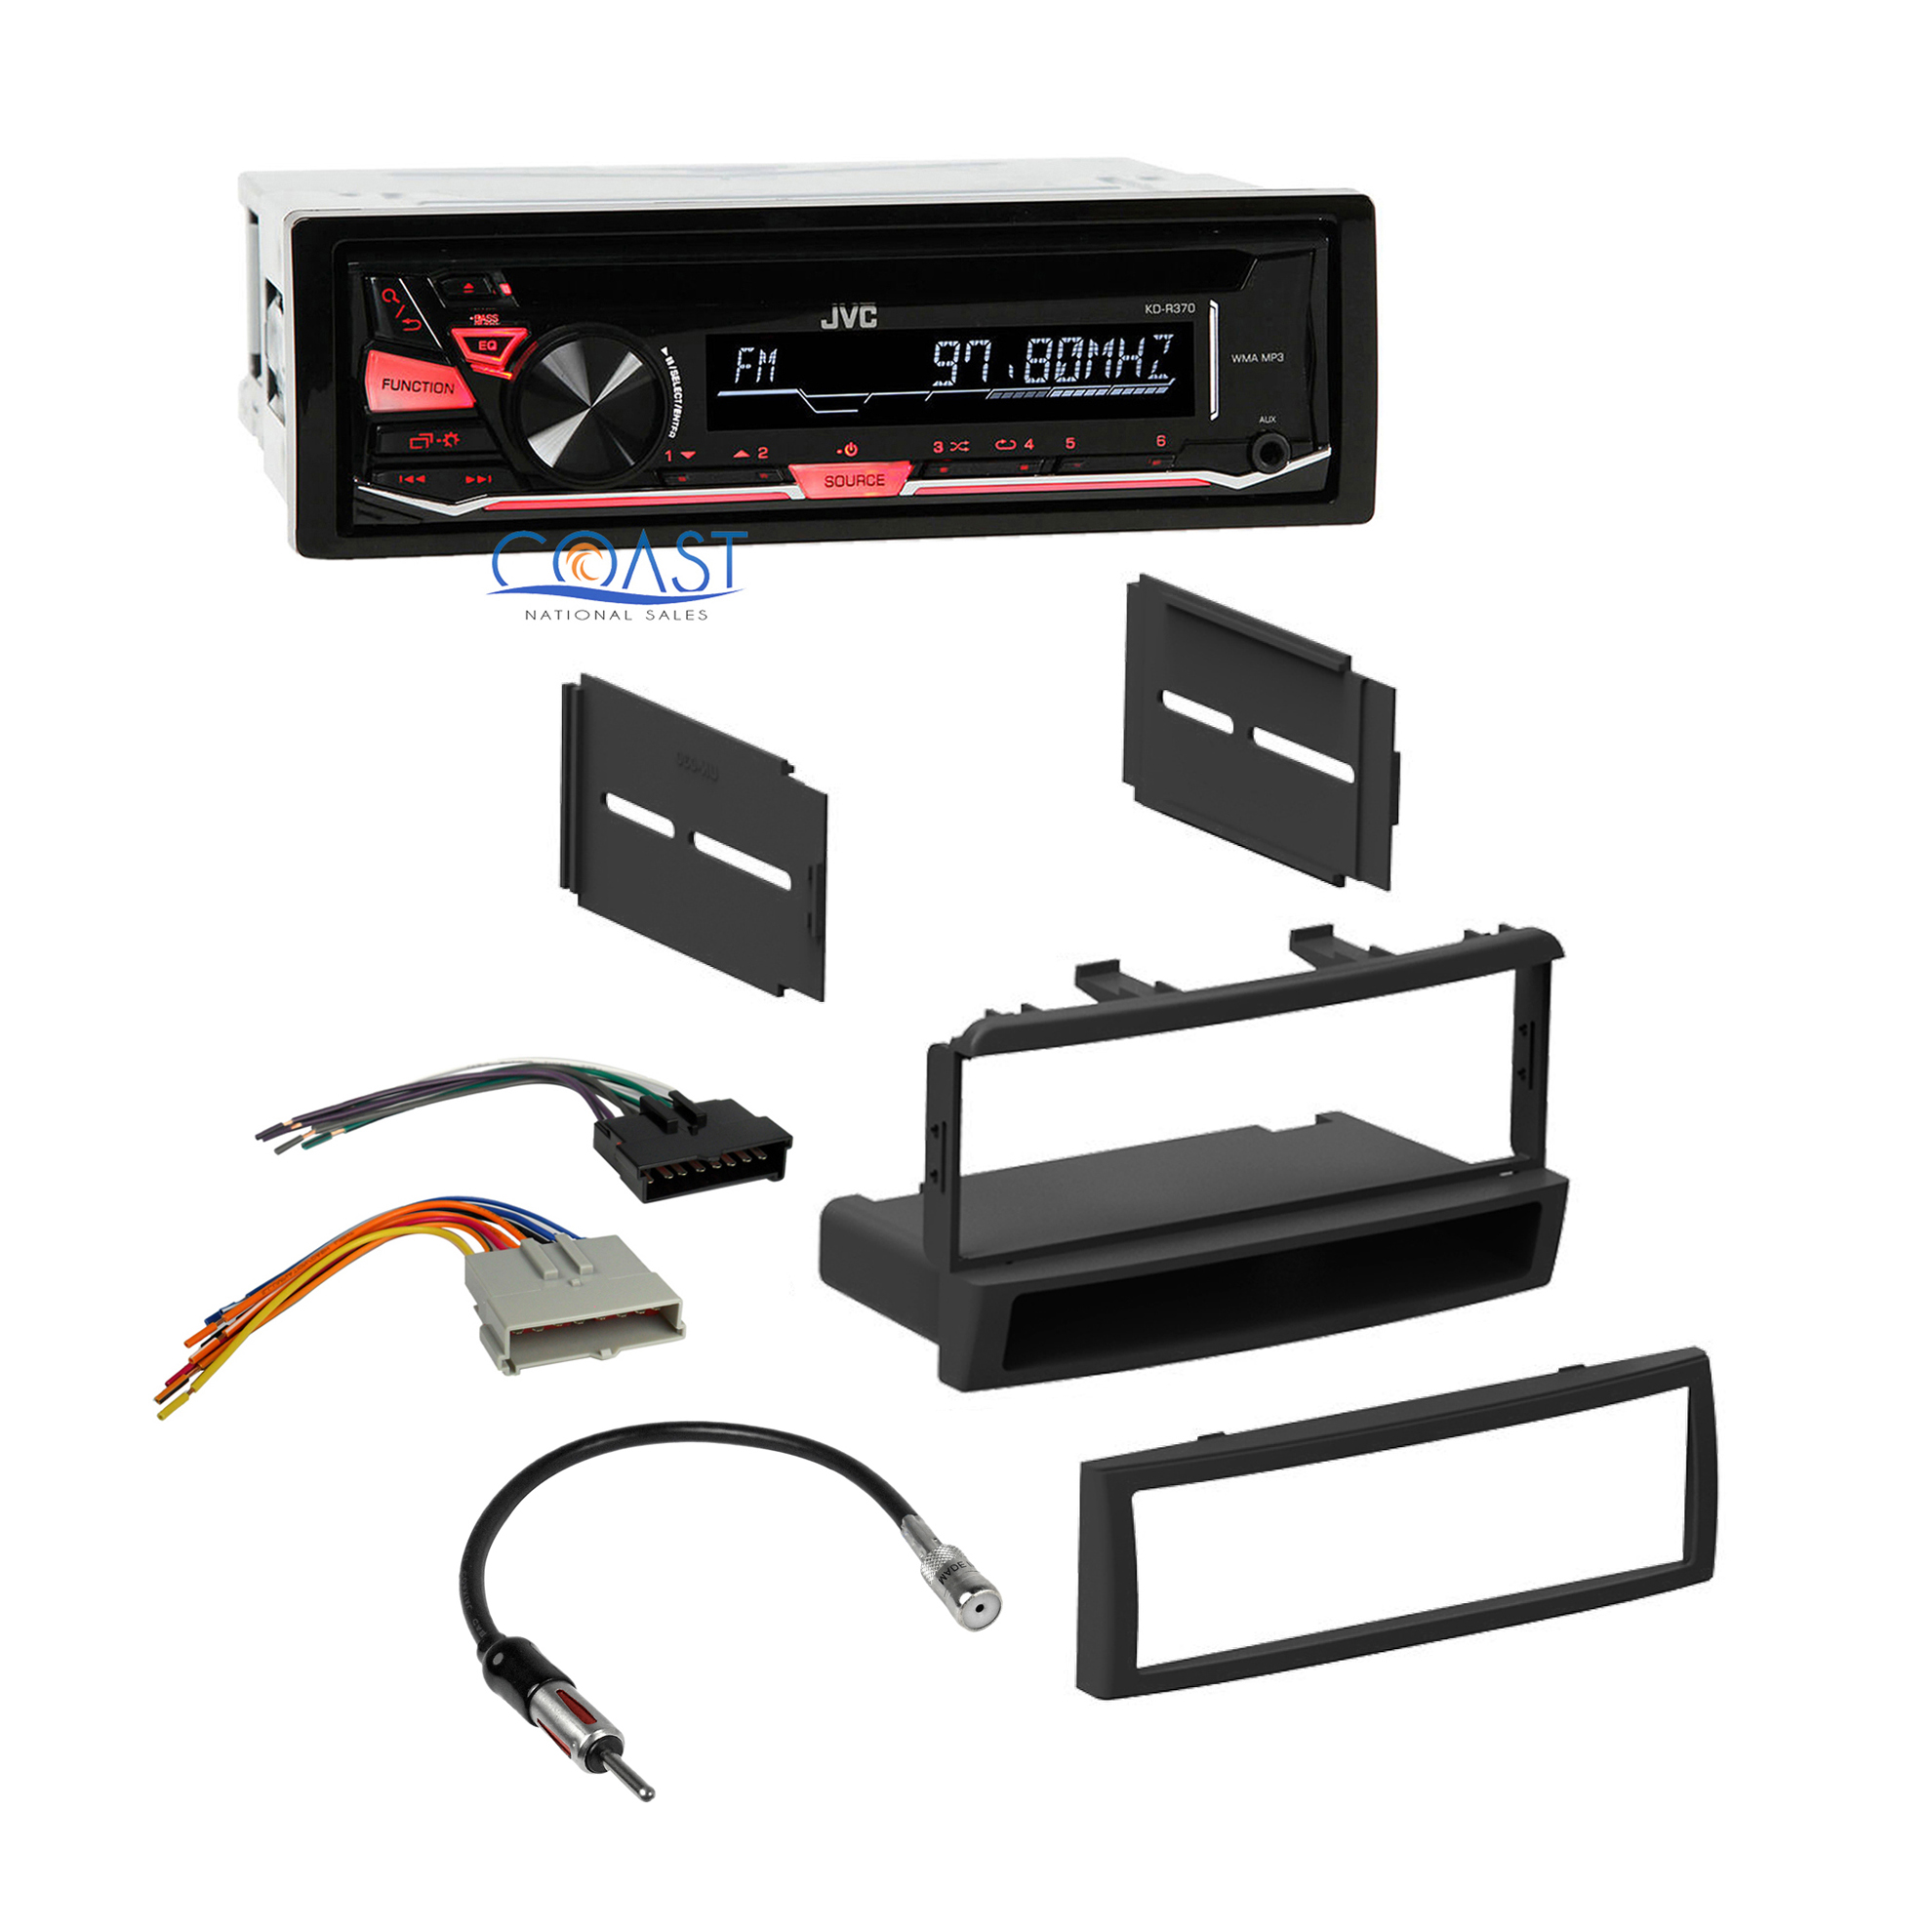 Mercury Cougar Stereo Wiring Automotive Diagram 1999 Jvc Radio Dash Kit Harness For 98 04 Ford 1994 1993